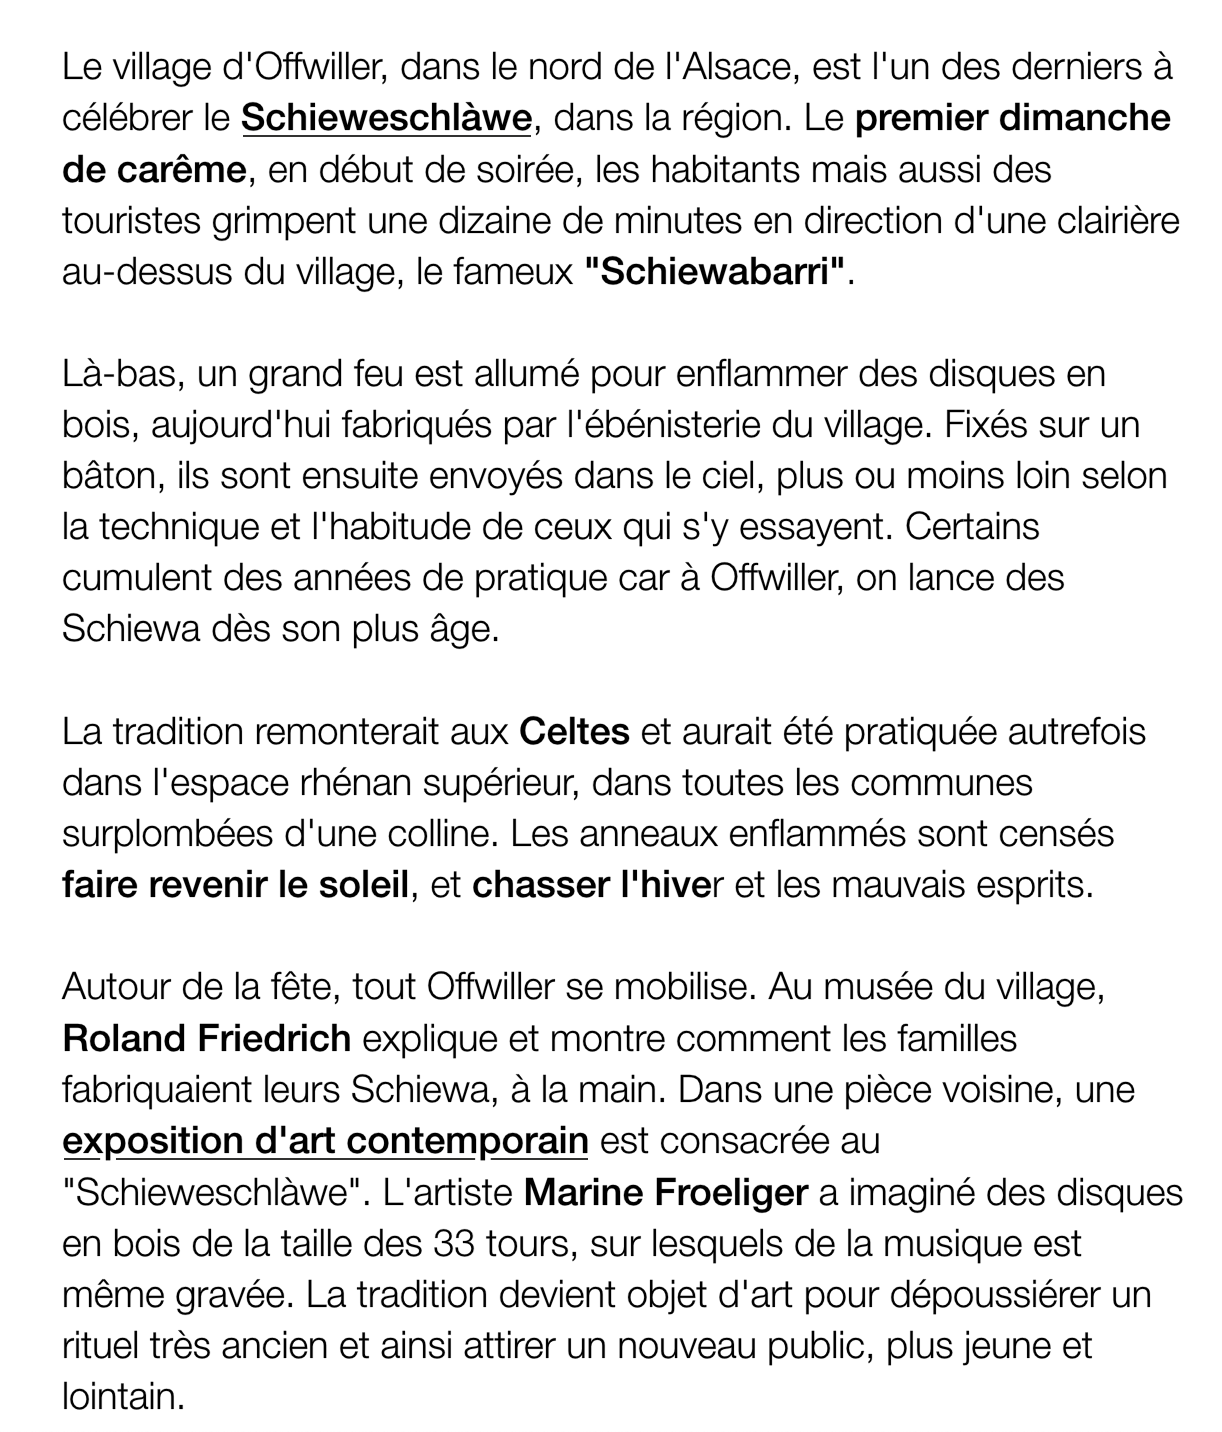 extrait du site internet de France 3 Grand Est, mars 2019